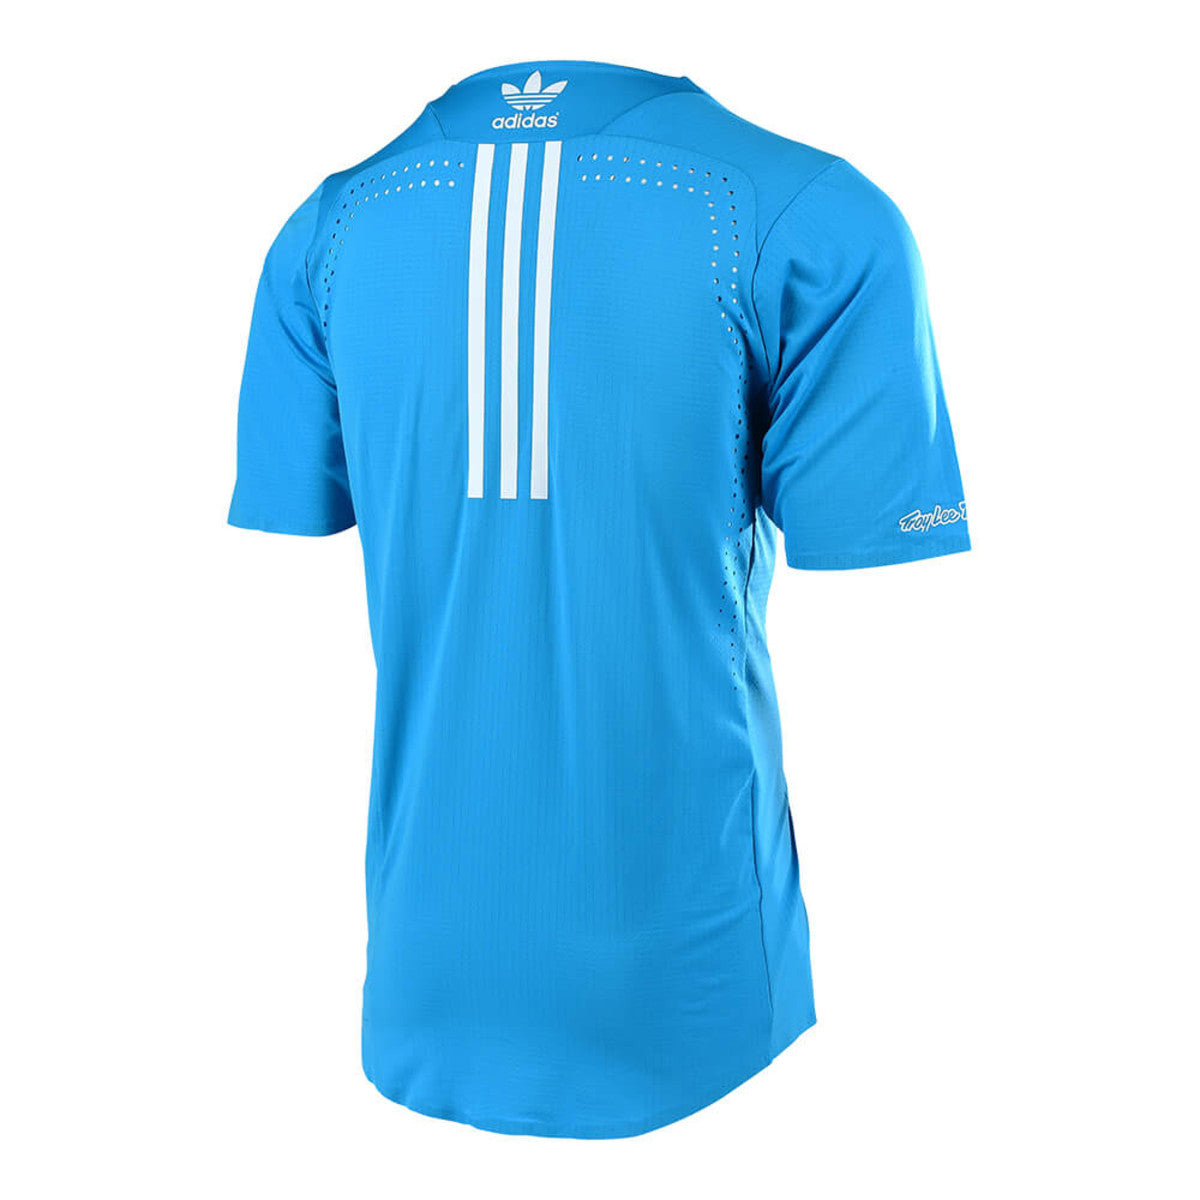 Troy Lee Designs Ultra Adidas short-sleeve jersey - Blue